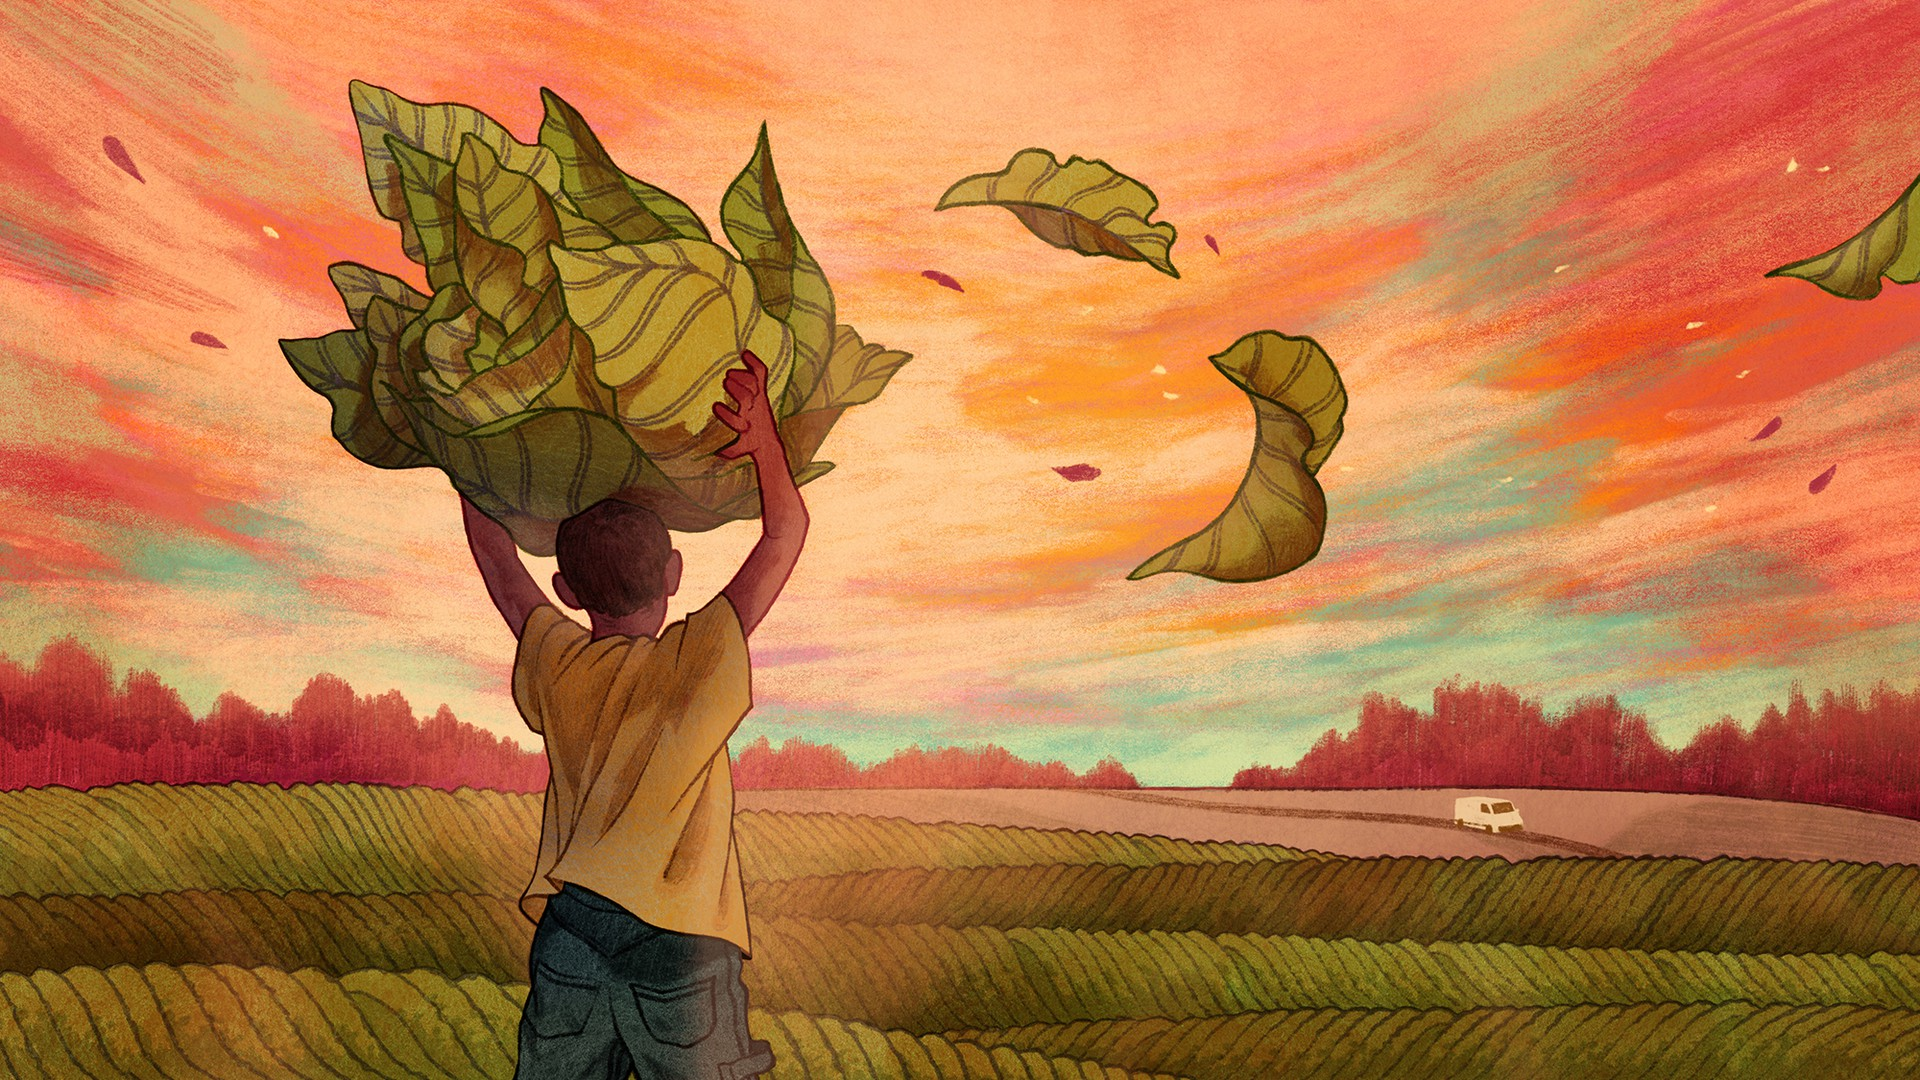 An illustration of a child tobacco farmer in a field